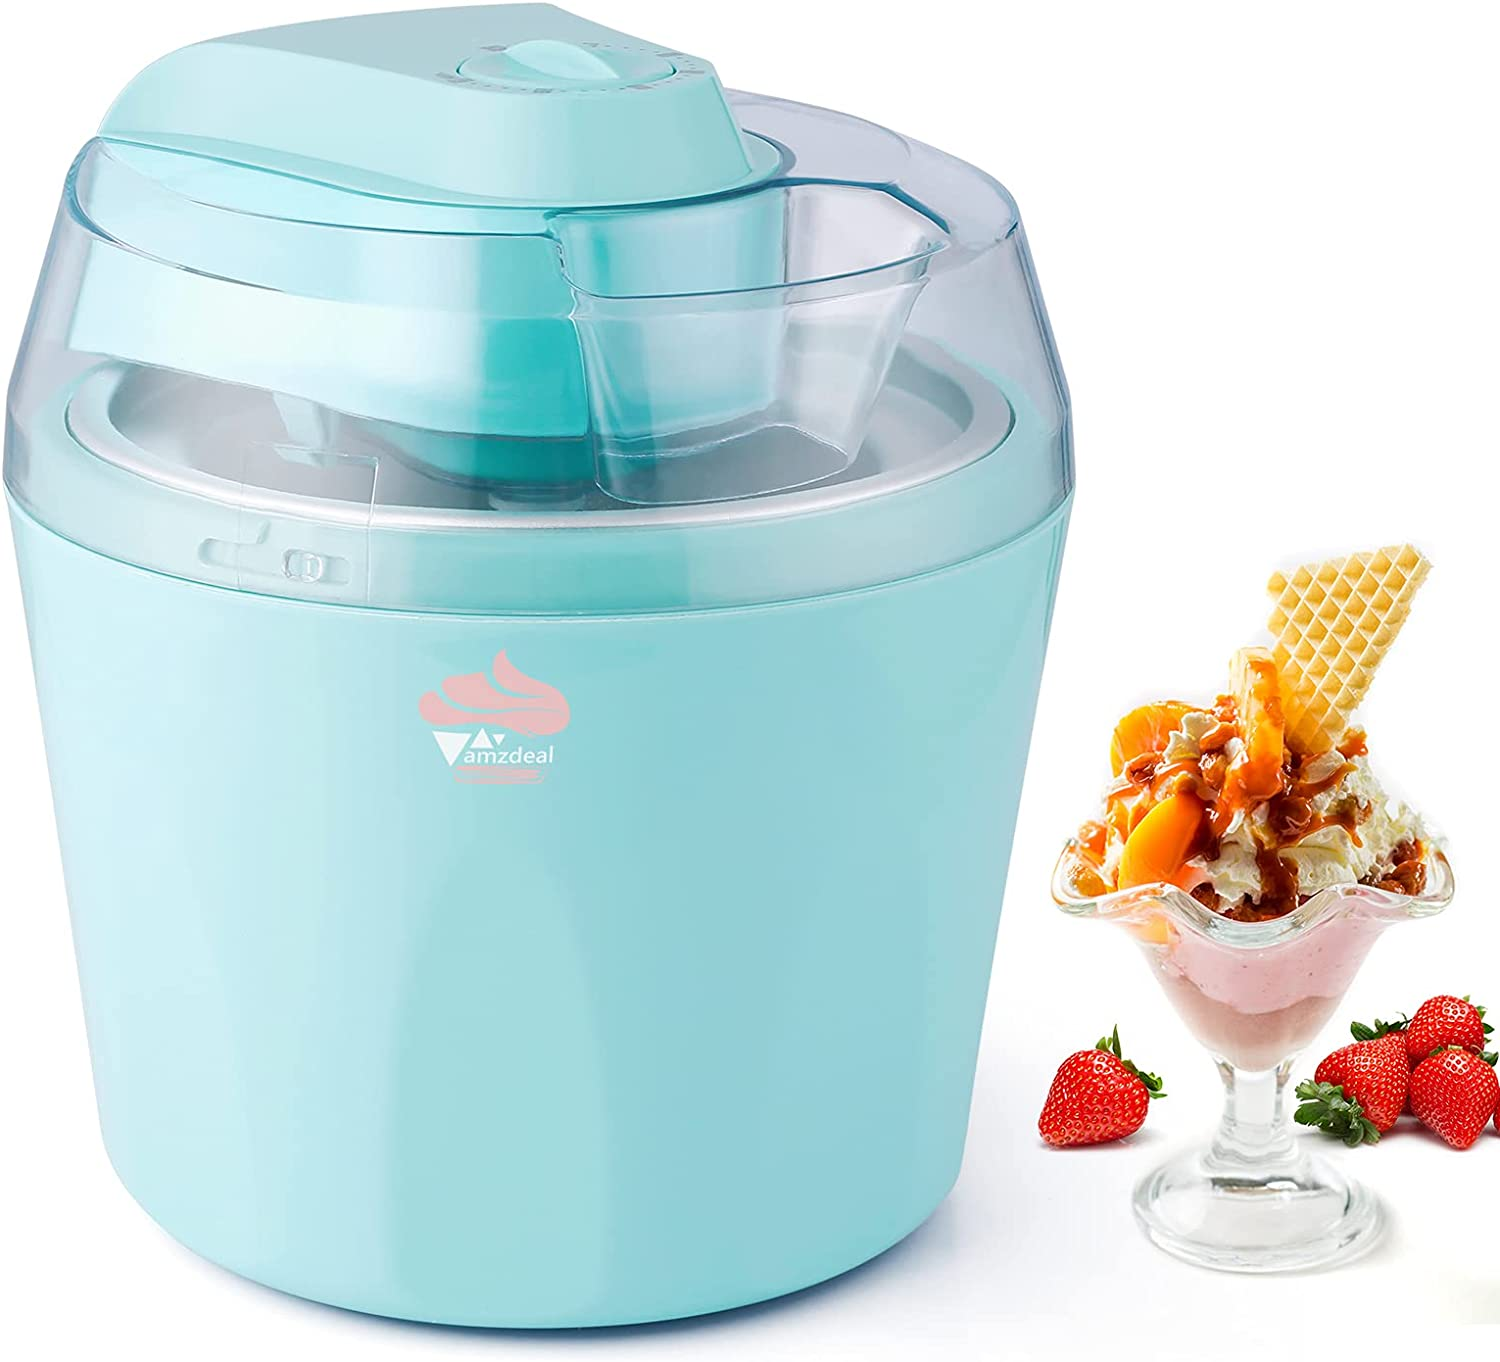 Amzdeal Ice Cream Maker 1.5 Quart, Ice Cream Machine with 30-minute Timer & Transparent Lid, Automatic Ice Cream Maker for DIY Homemade Gelato, Frozen Yogurt, Ice Cream, Sorbet, Easy to Use & Clean